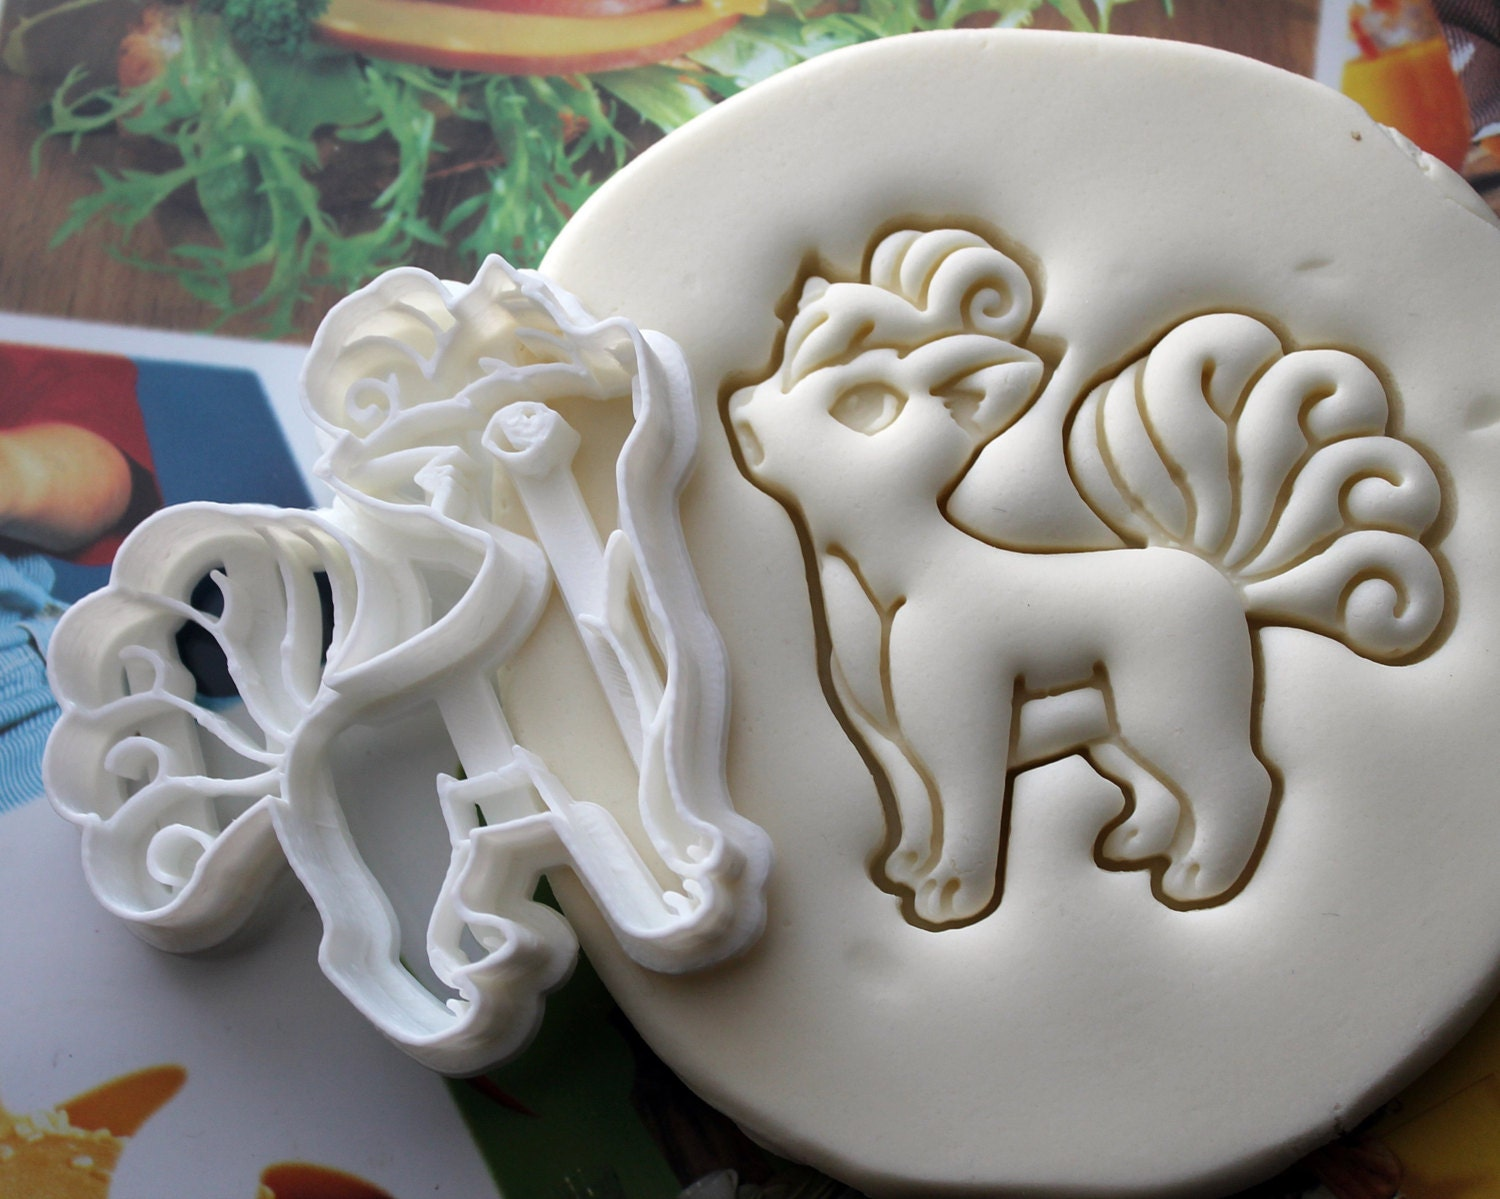 vulpix pokemon cookie cutter made from biodegradable